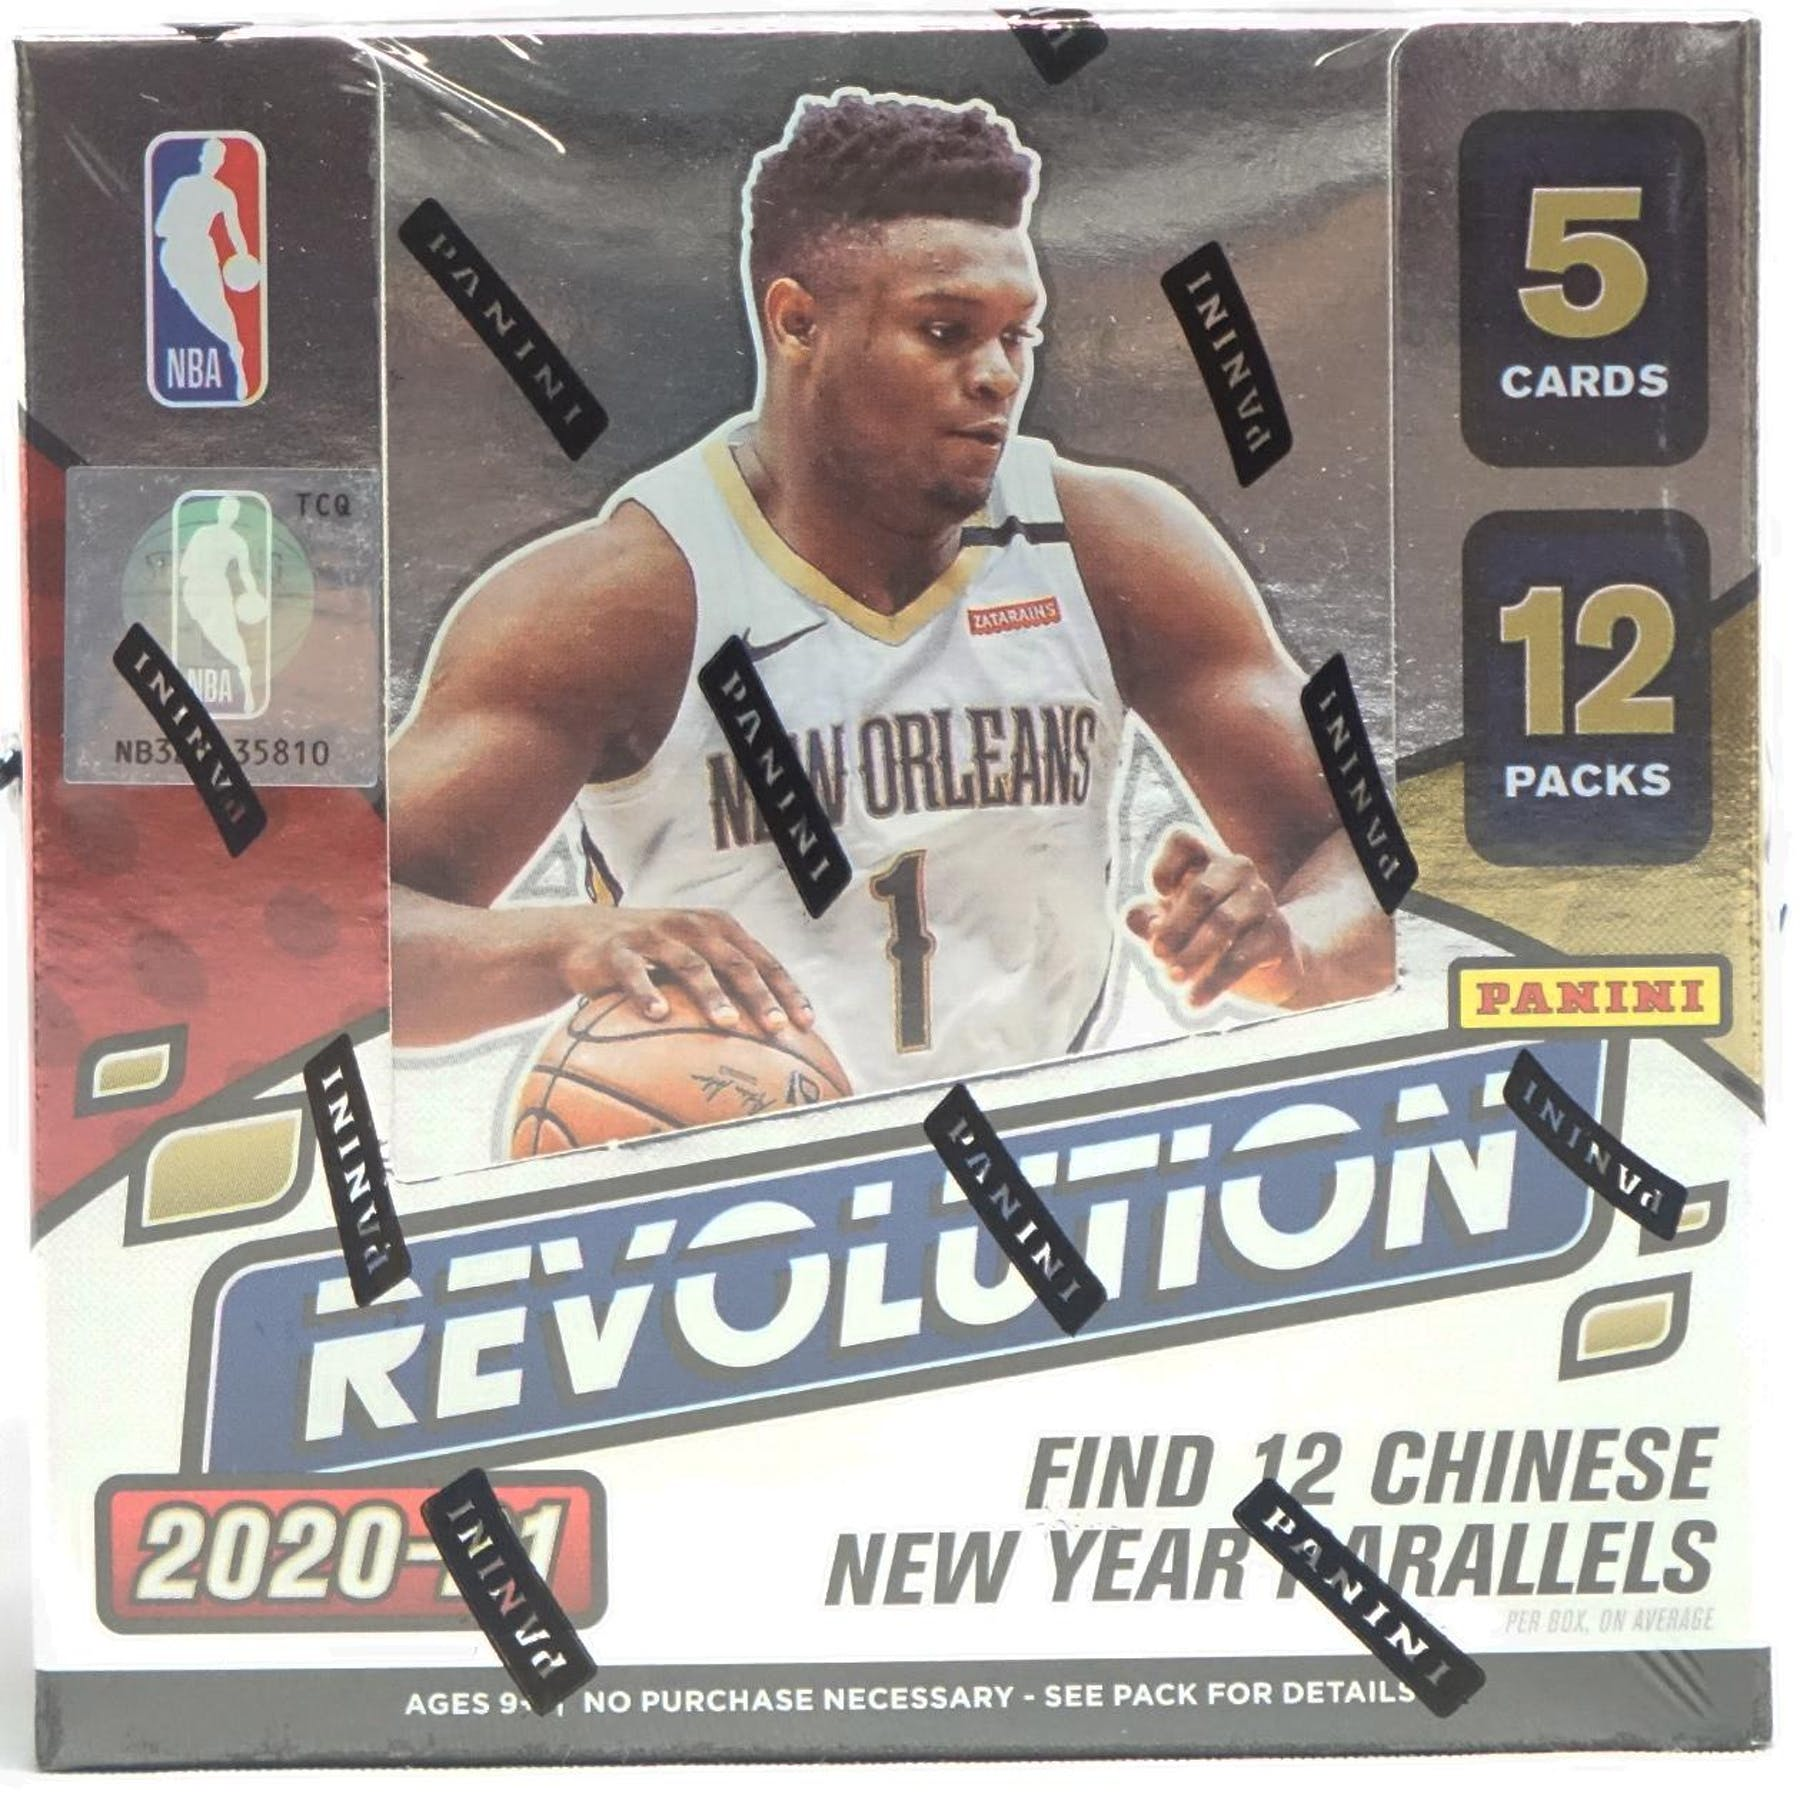 2020/21 Revolutions Chinese New Year Hobby Box